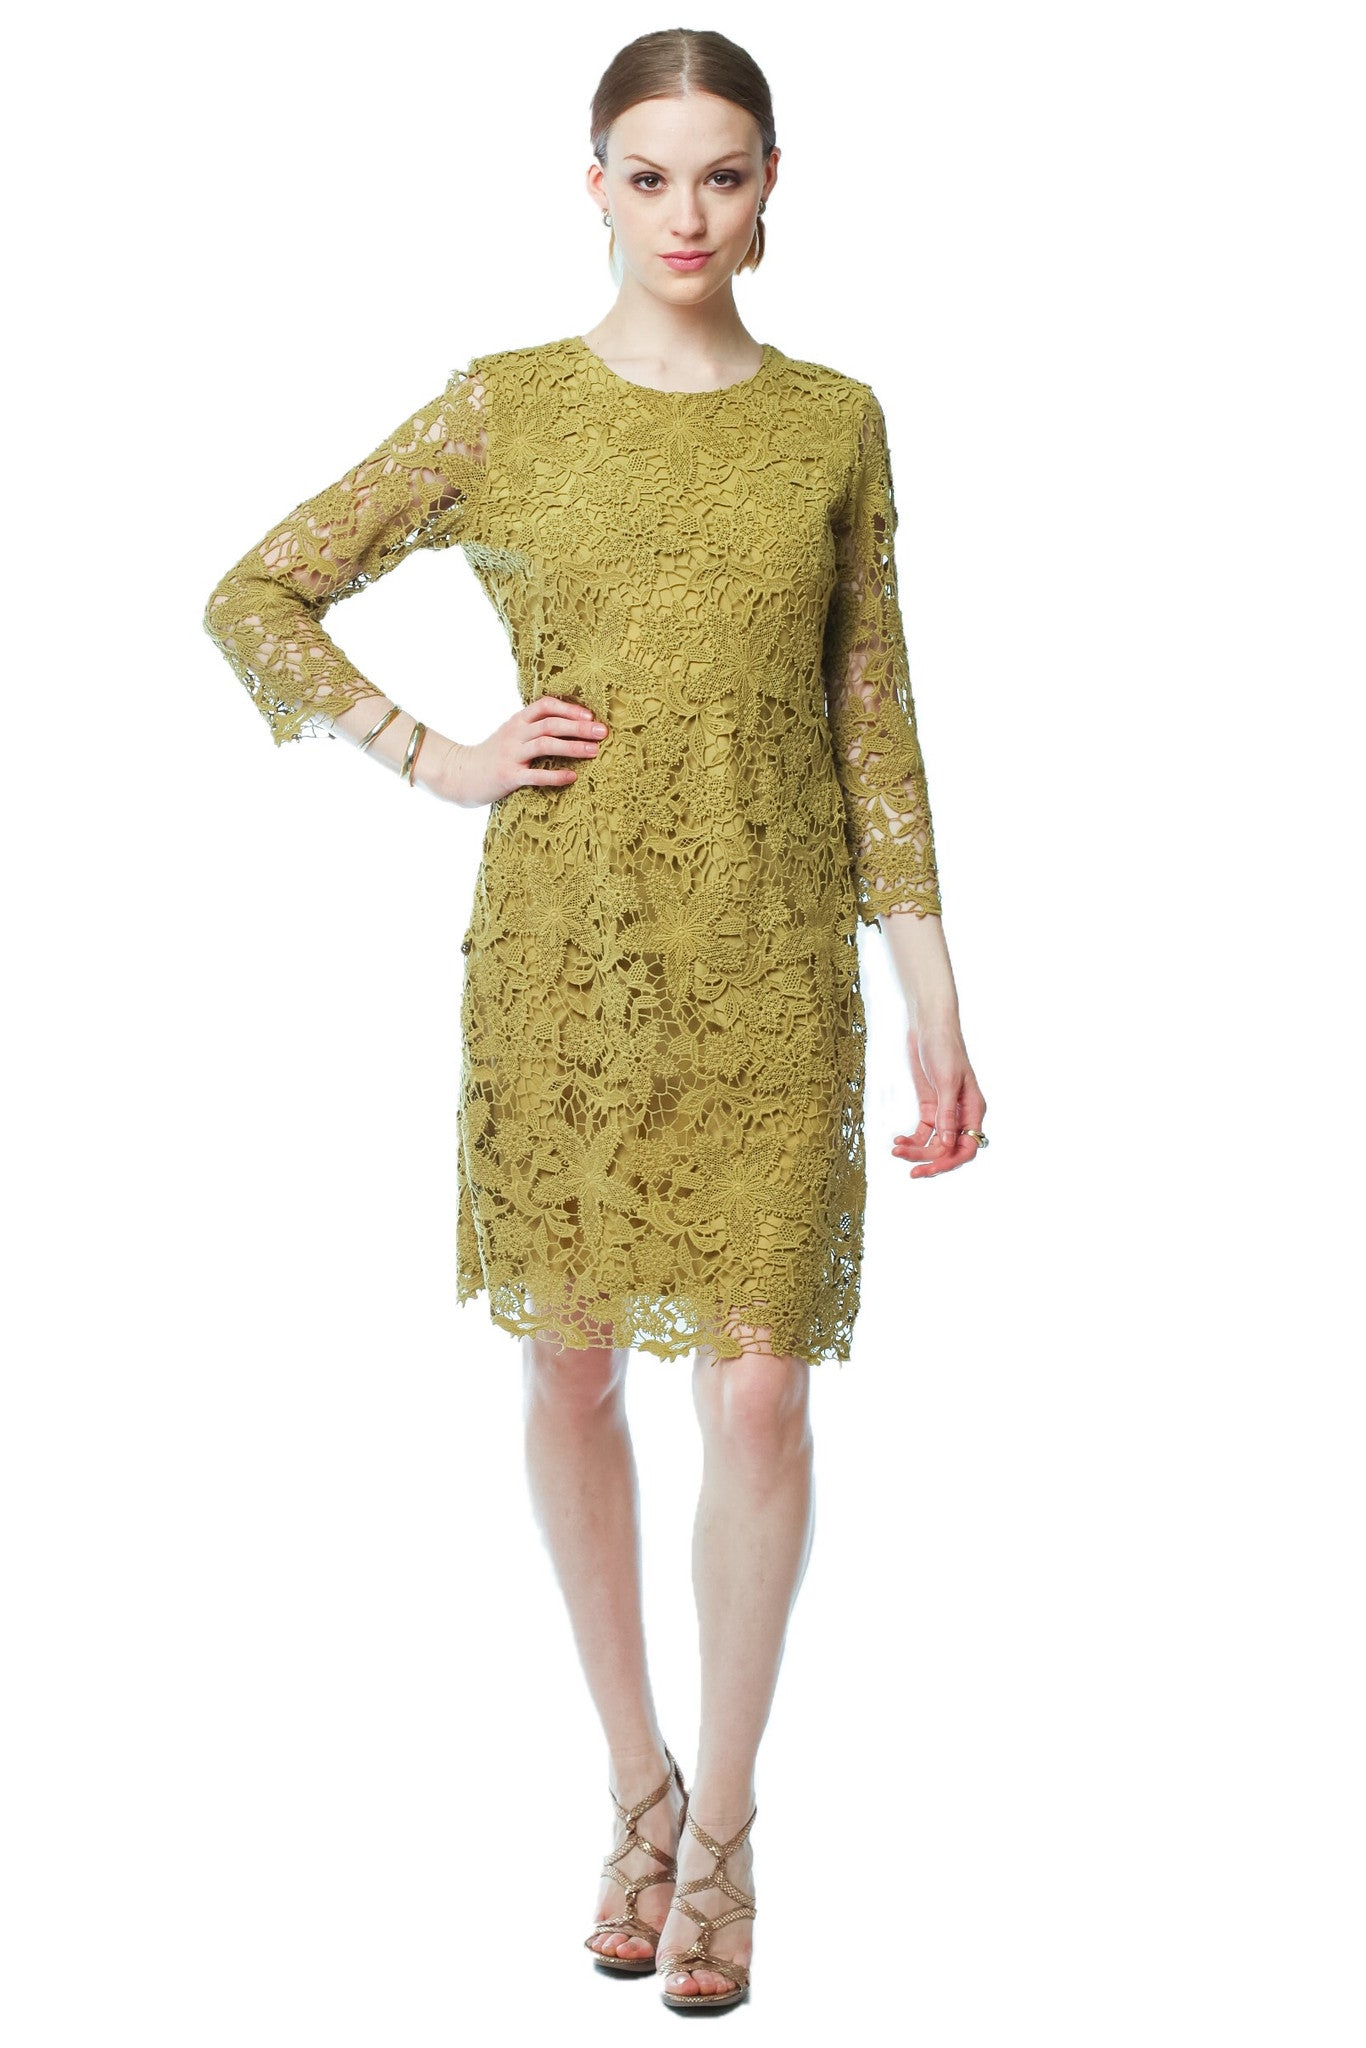 Green Olive lace dress pictures recommend dress for everyday in 2019